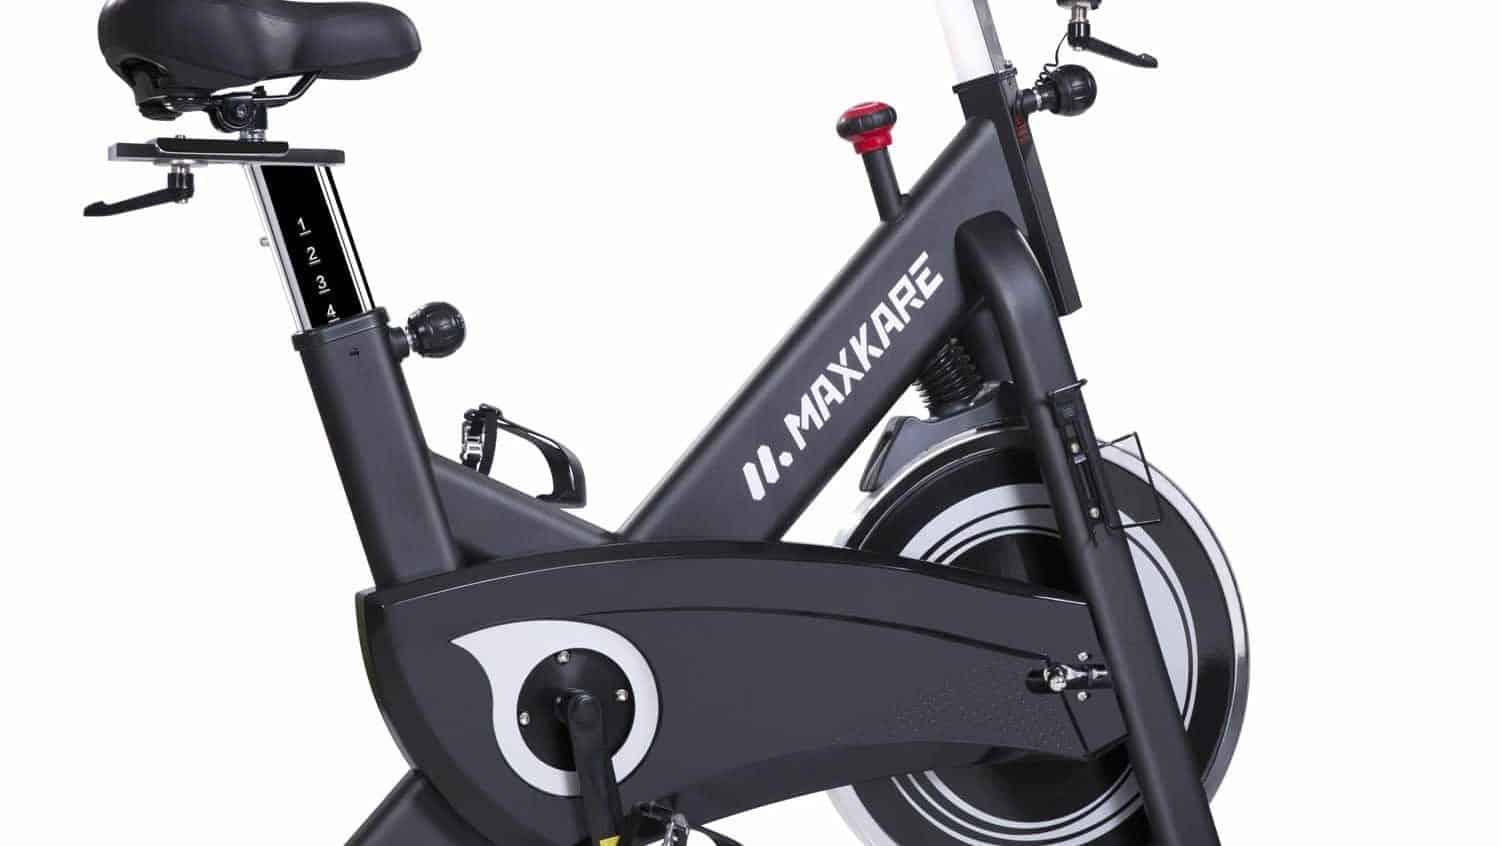 MaxKare Magnetic Indoor Cycling Bike Review